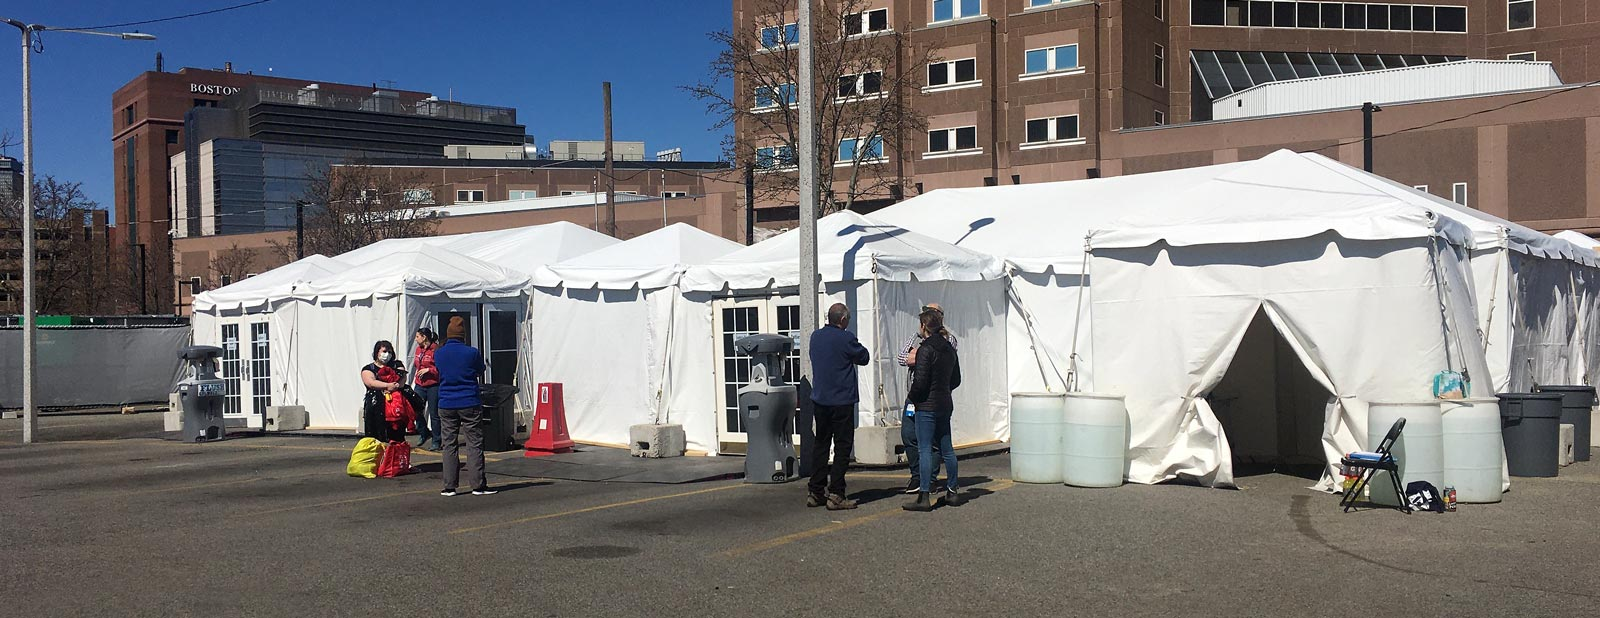 Testing tents for people experience homelessness in Boston, MA.